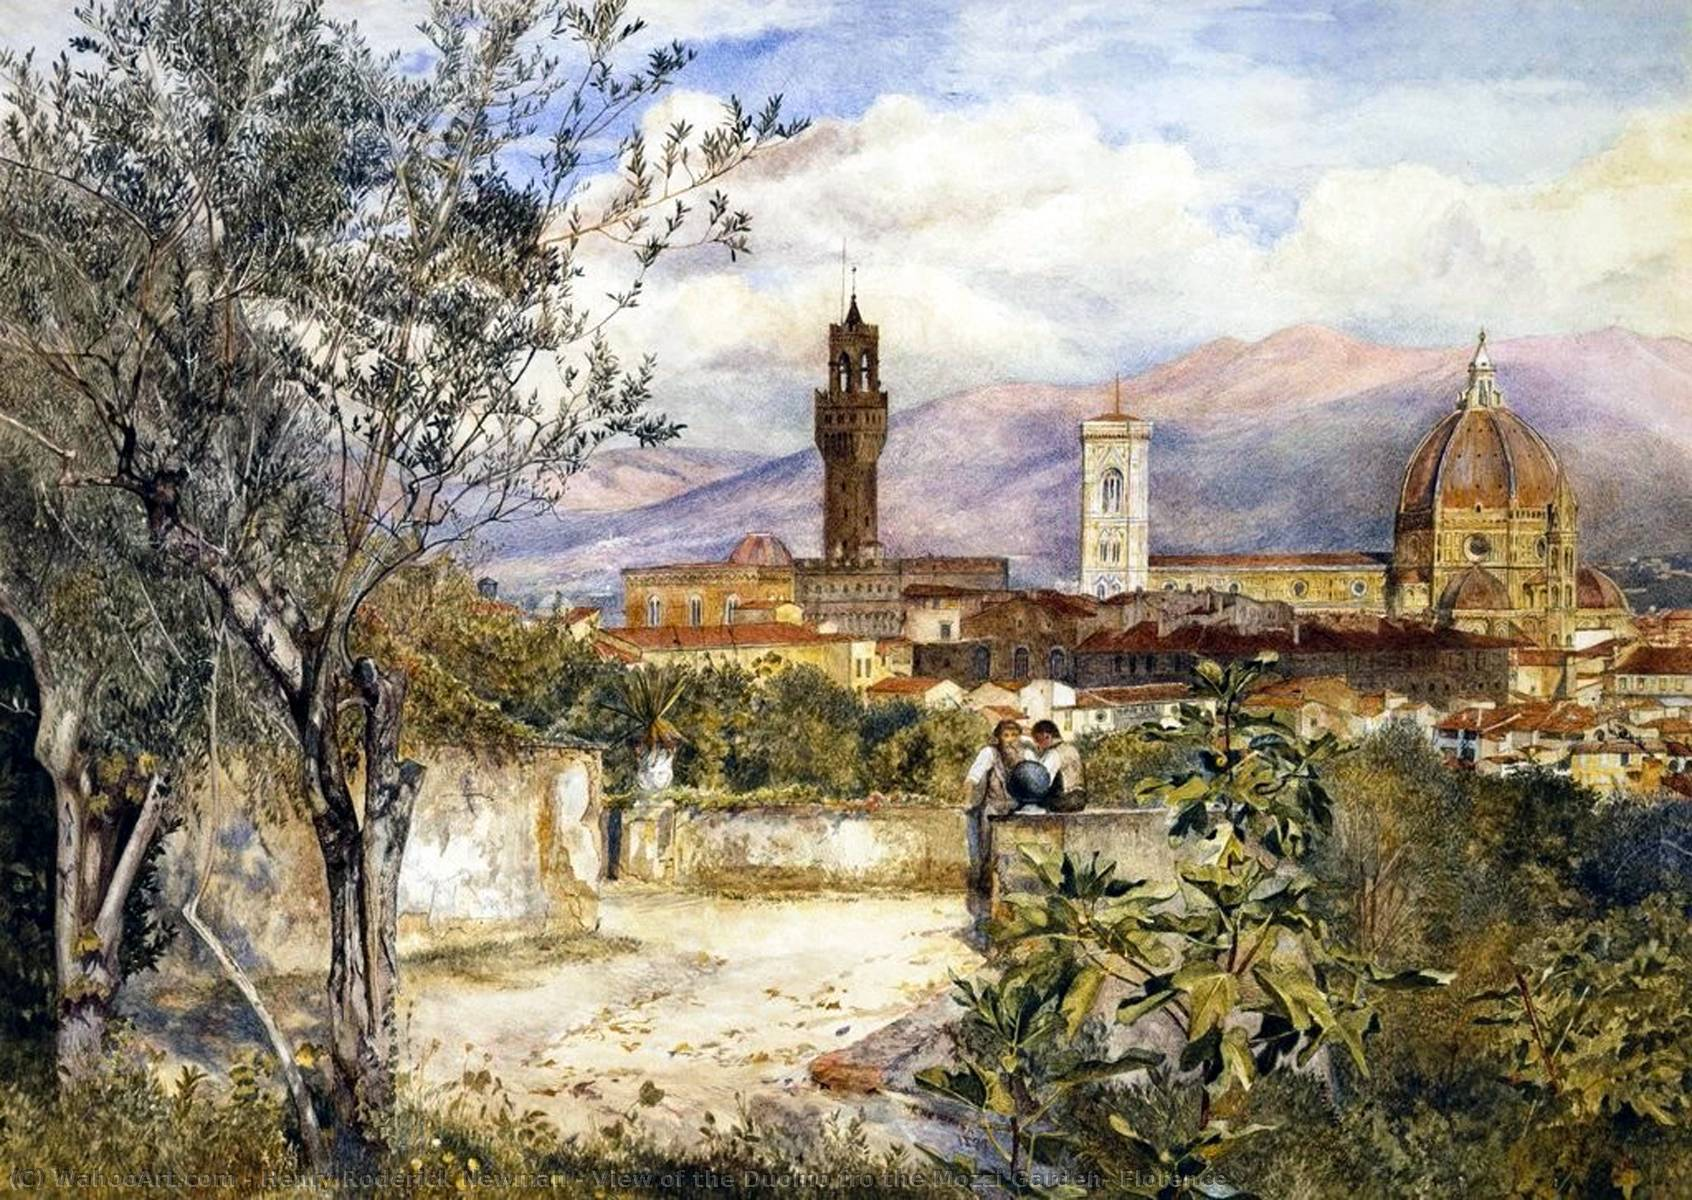 Buy Museum Art Reproductions | View of the Duomo fro the Mozzi Garden, Florence, 1877 by Henry Roderick Newman (1833-1918, United States) | WahooArt.com